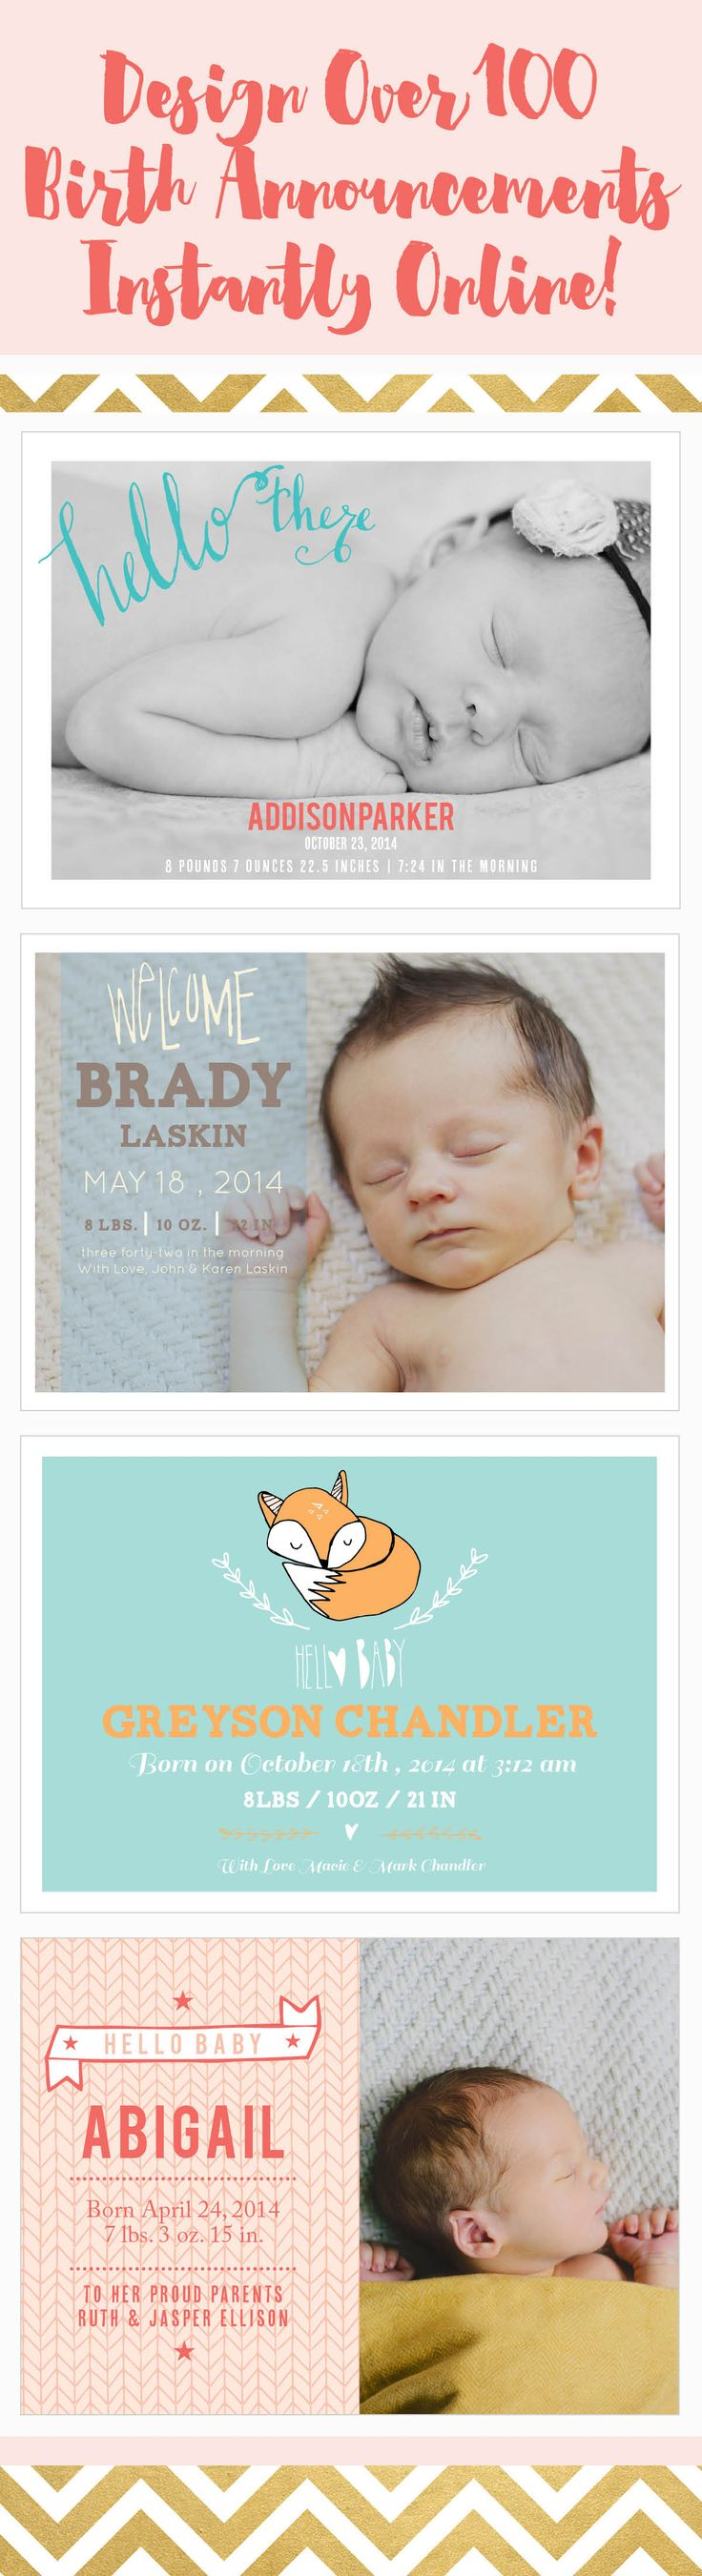 Find over 100 birth announcements that you can instantly design online. See real-time previews.